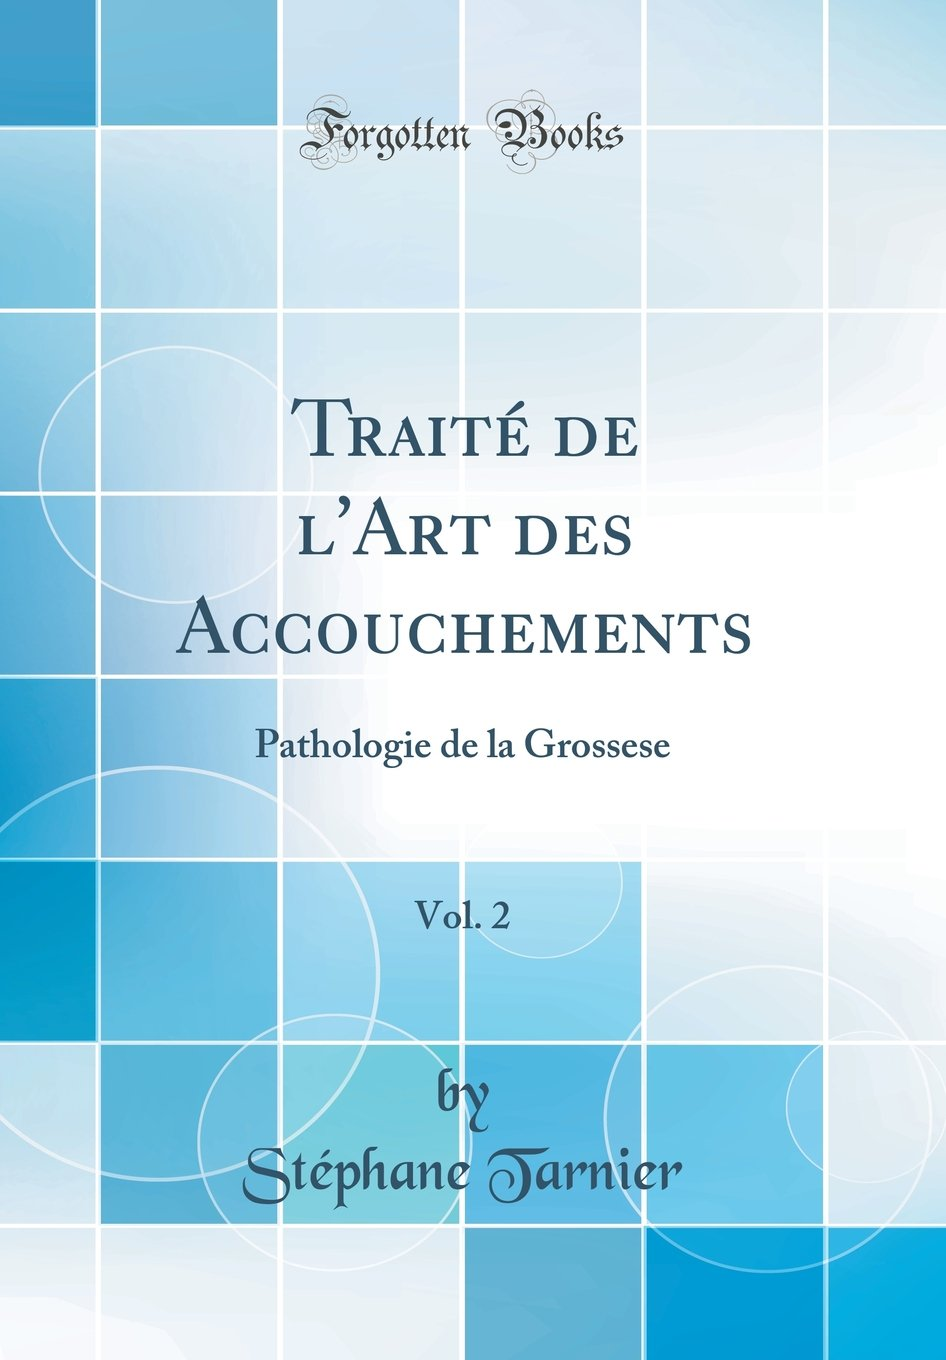 Read Online Traité de l'Art des Accouchements, Vol. 2: Pathologie de la Grossese (Classic Reprint) (French Edition) PDF